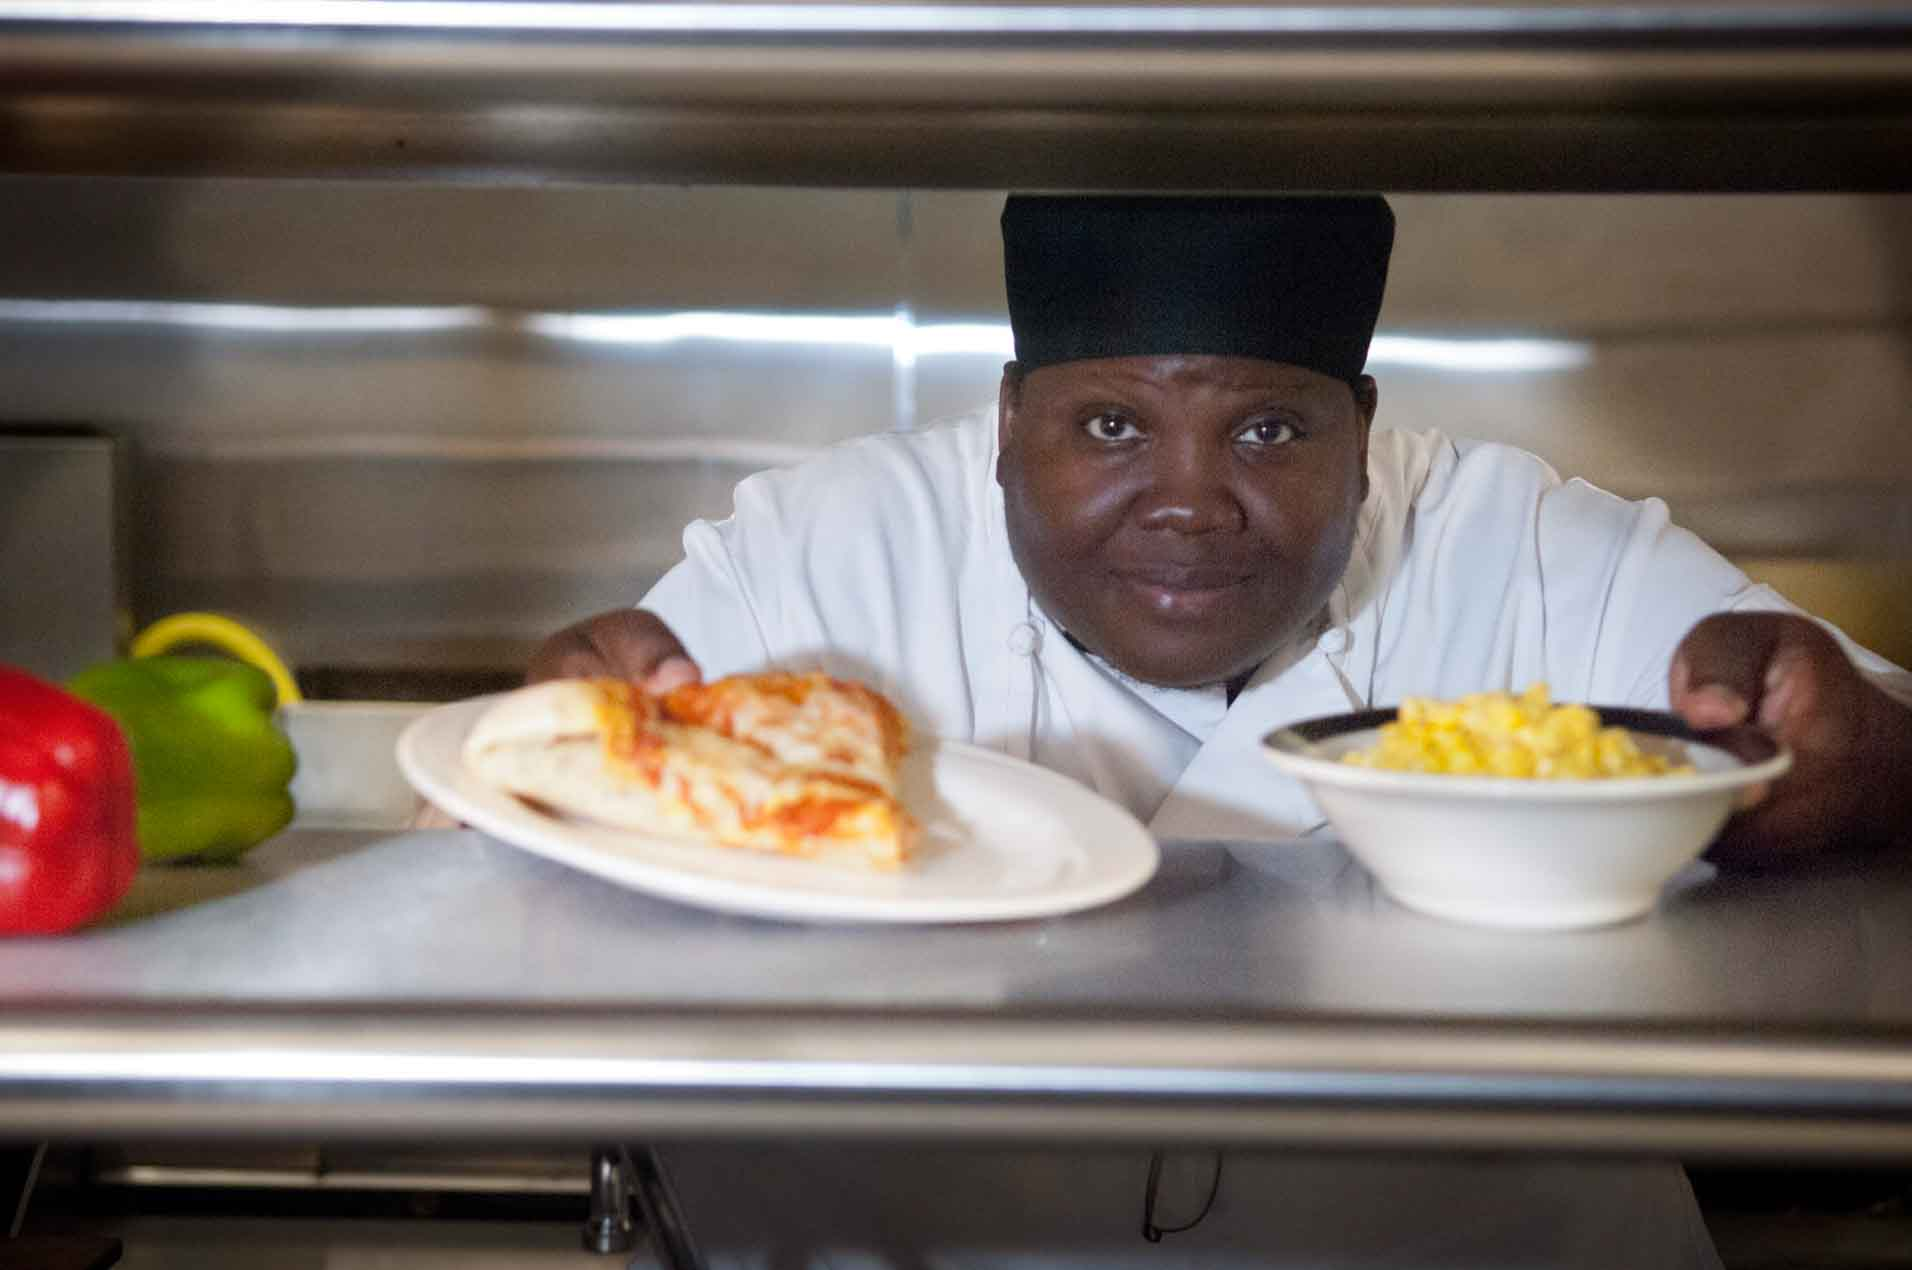 A woman in chef's clothing placing pizza and corn on a counter.